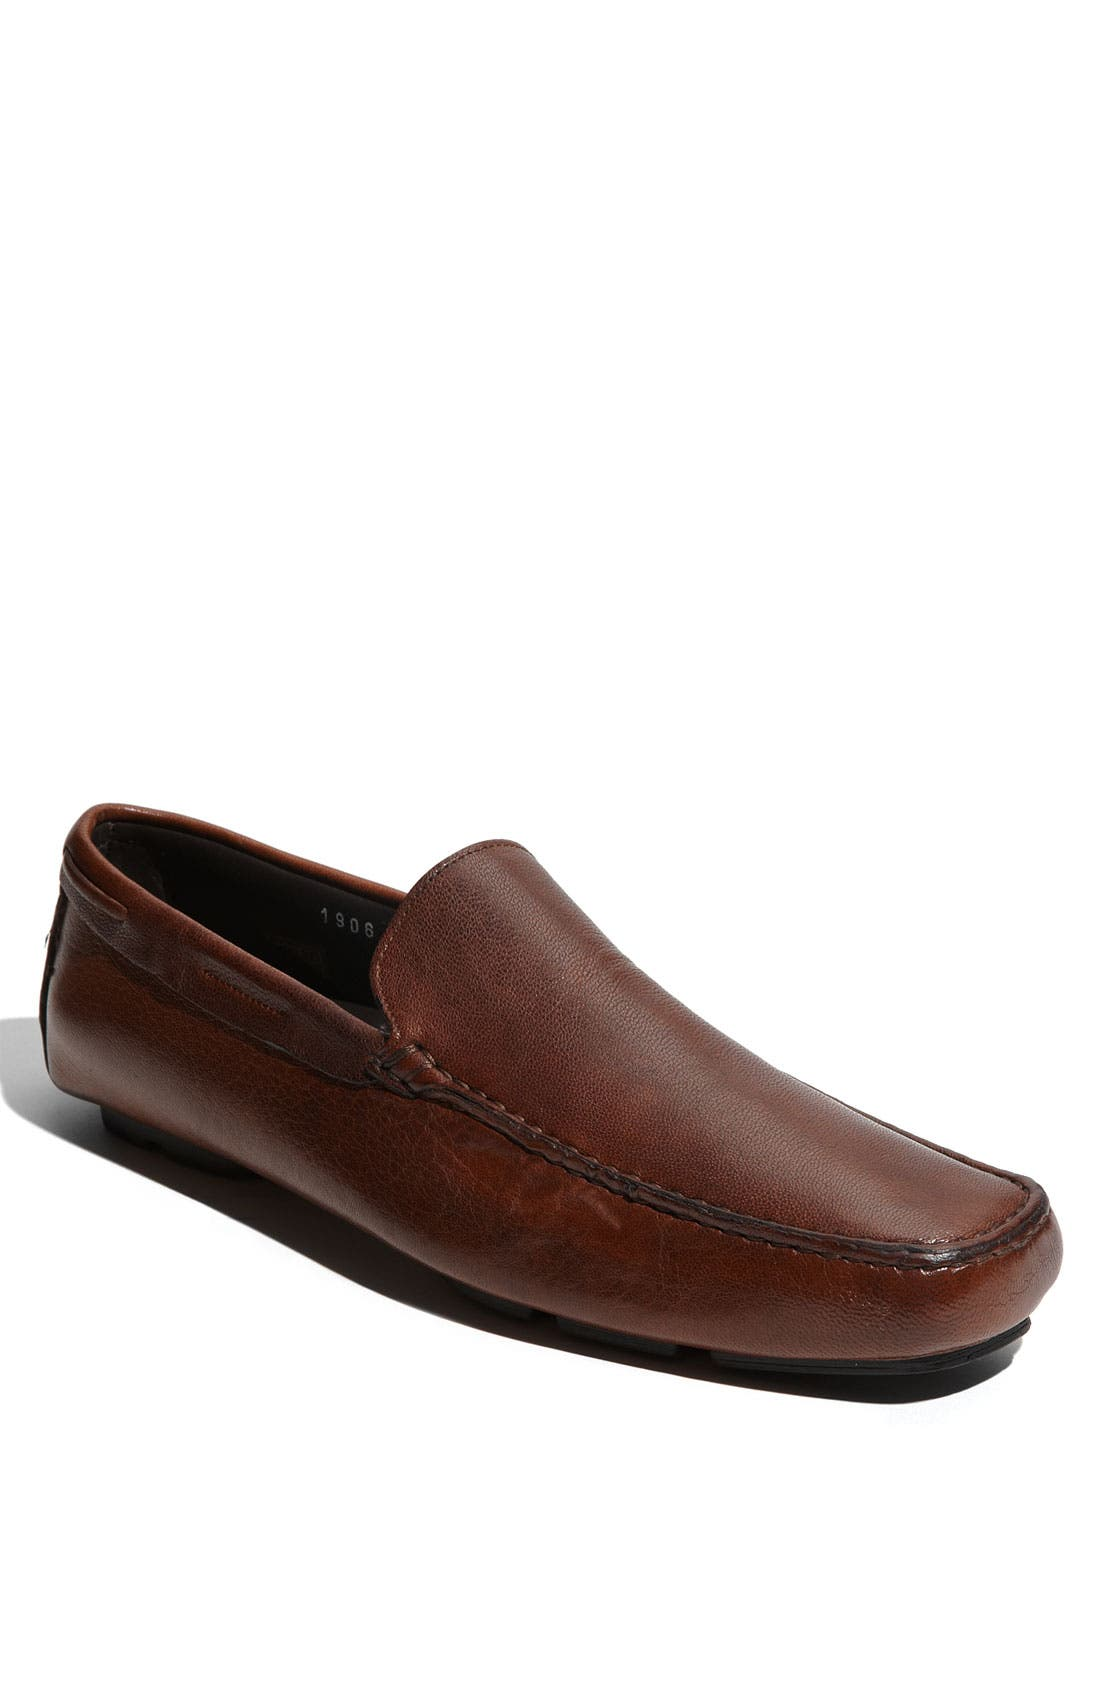 Alternate Image 1 Selected - To Boot New York 'Barkley' Loafer